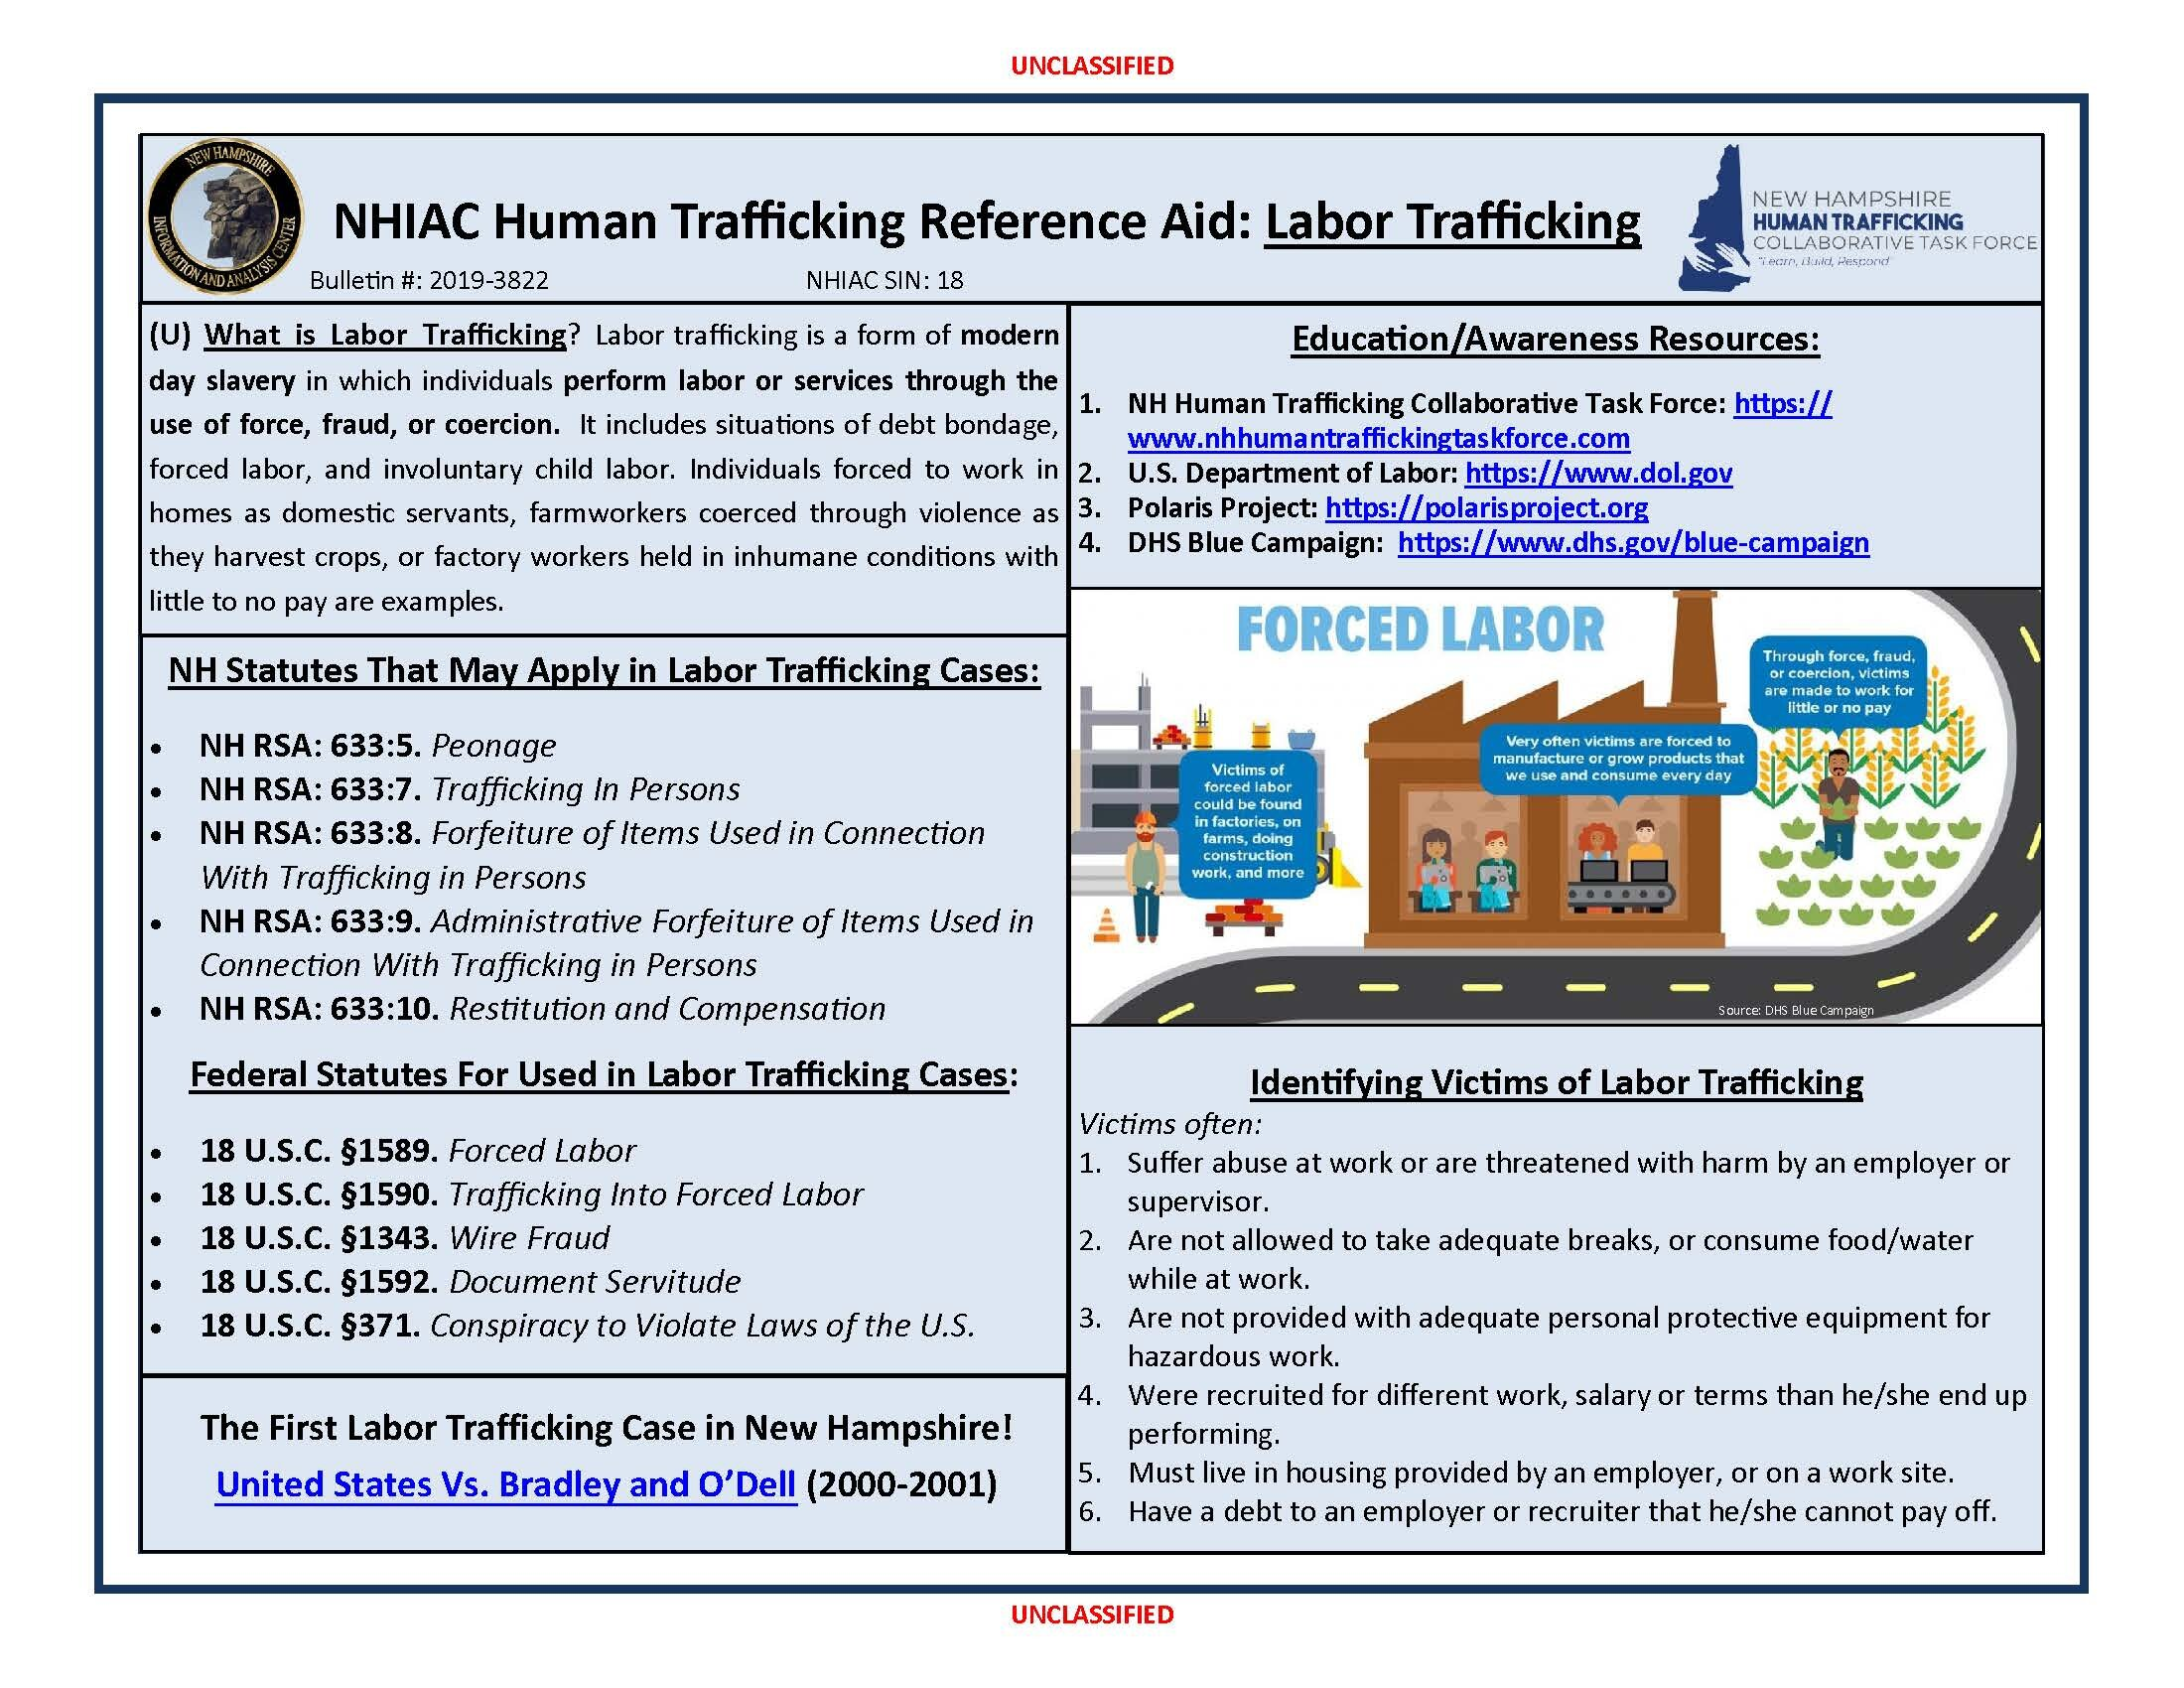 Reference Aid - Labor Trafficking.jpg